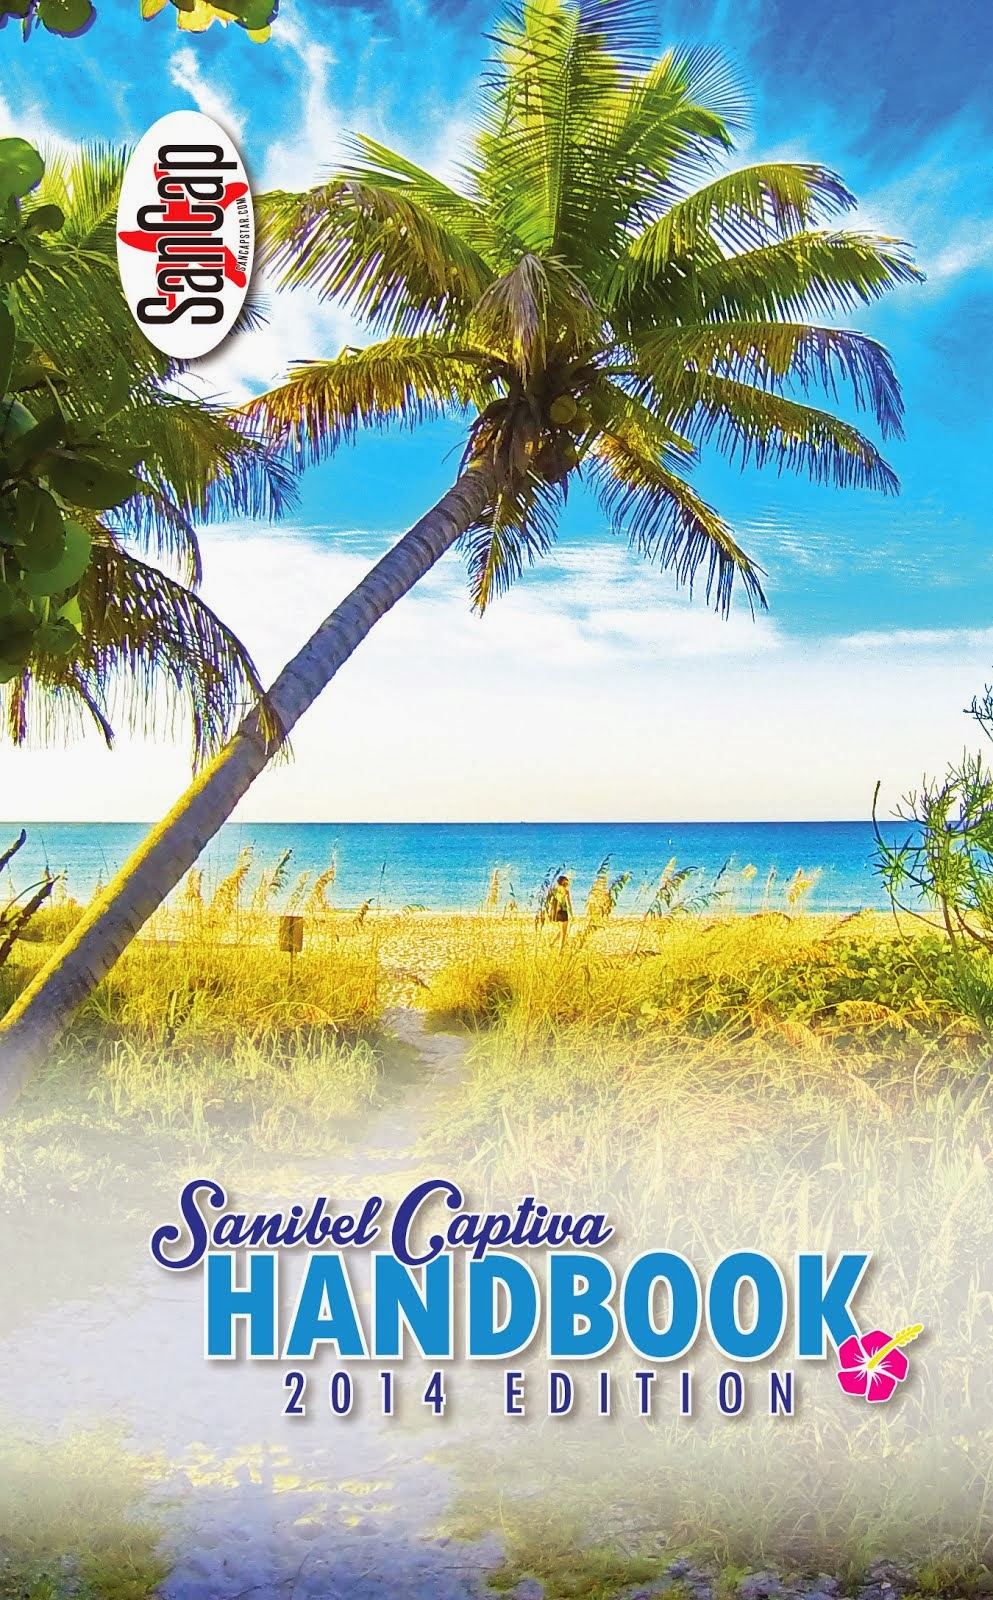 Sanibel Captiva Handbook